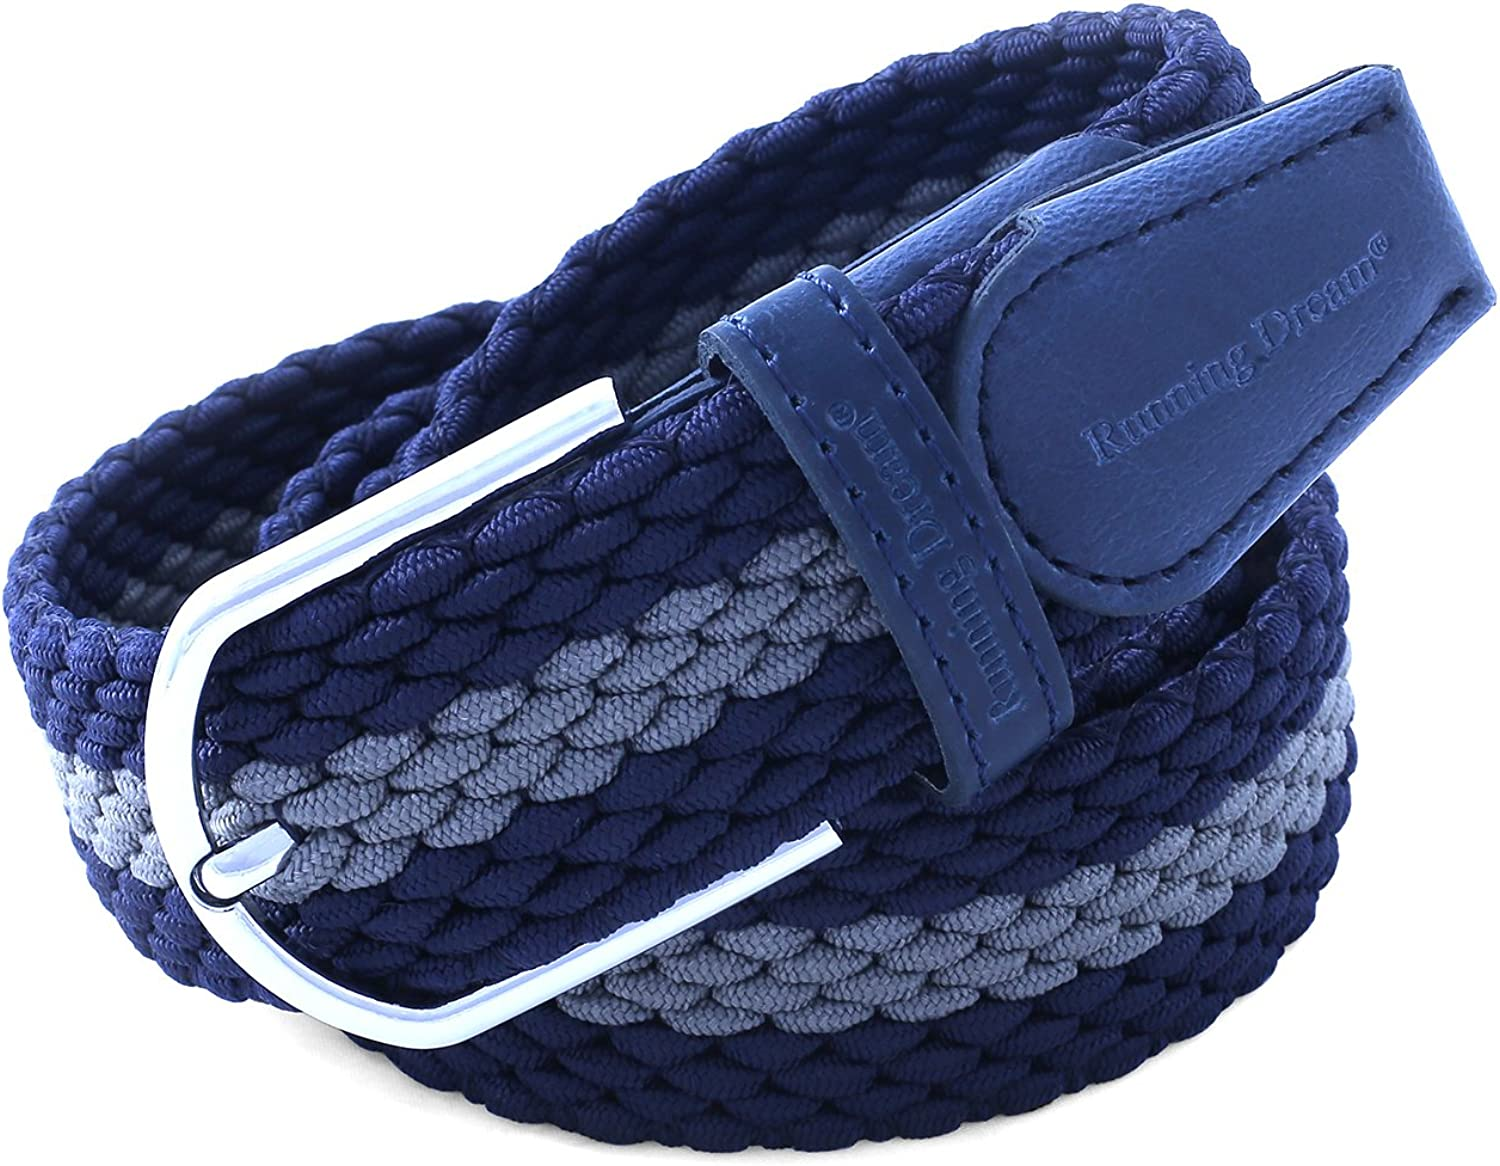 Running Dream Elastic Stretch Belt for Man and Women Multi-Color Options M - Fits waist sizes 29-36, Blue+Gray